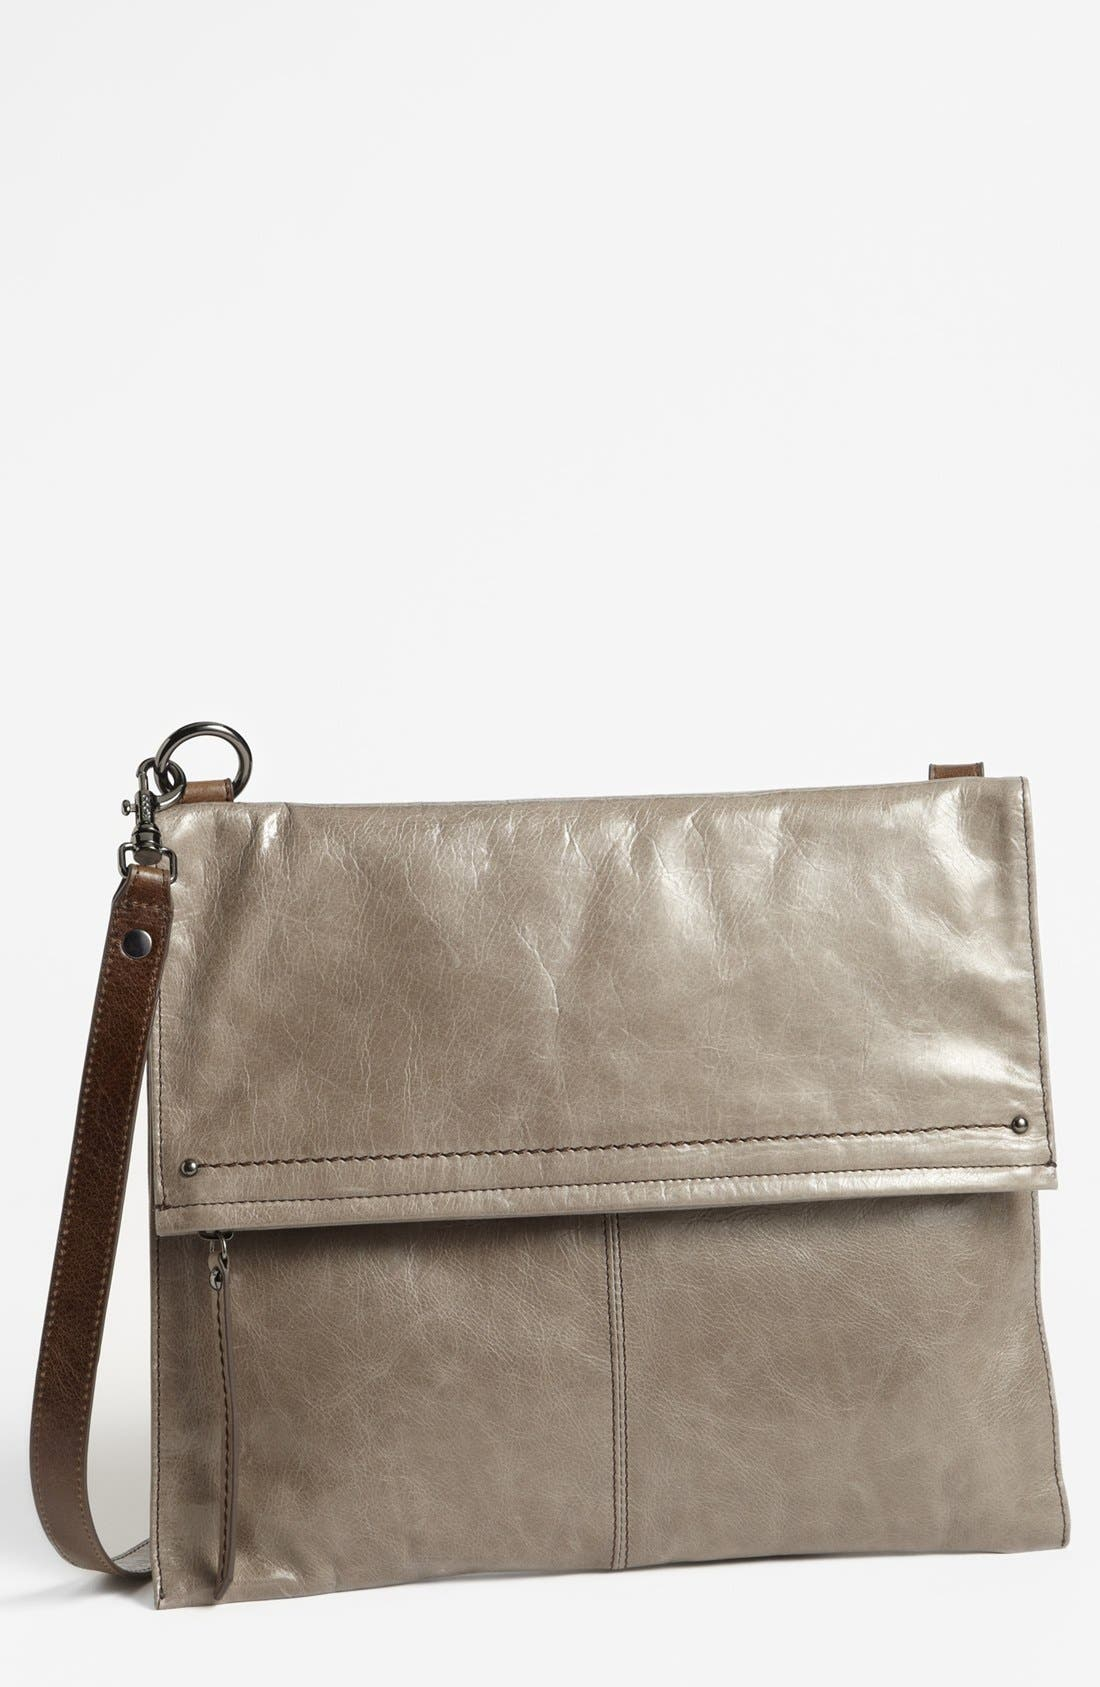 Main Image - Hobo 'Lindy' Crossbody Bag